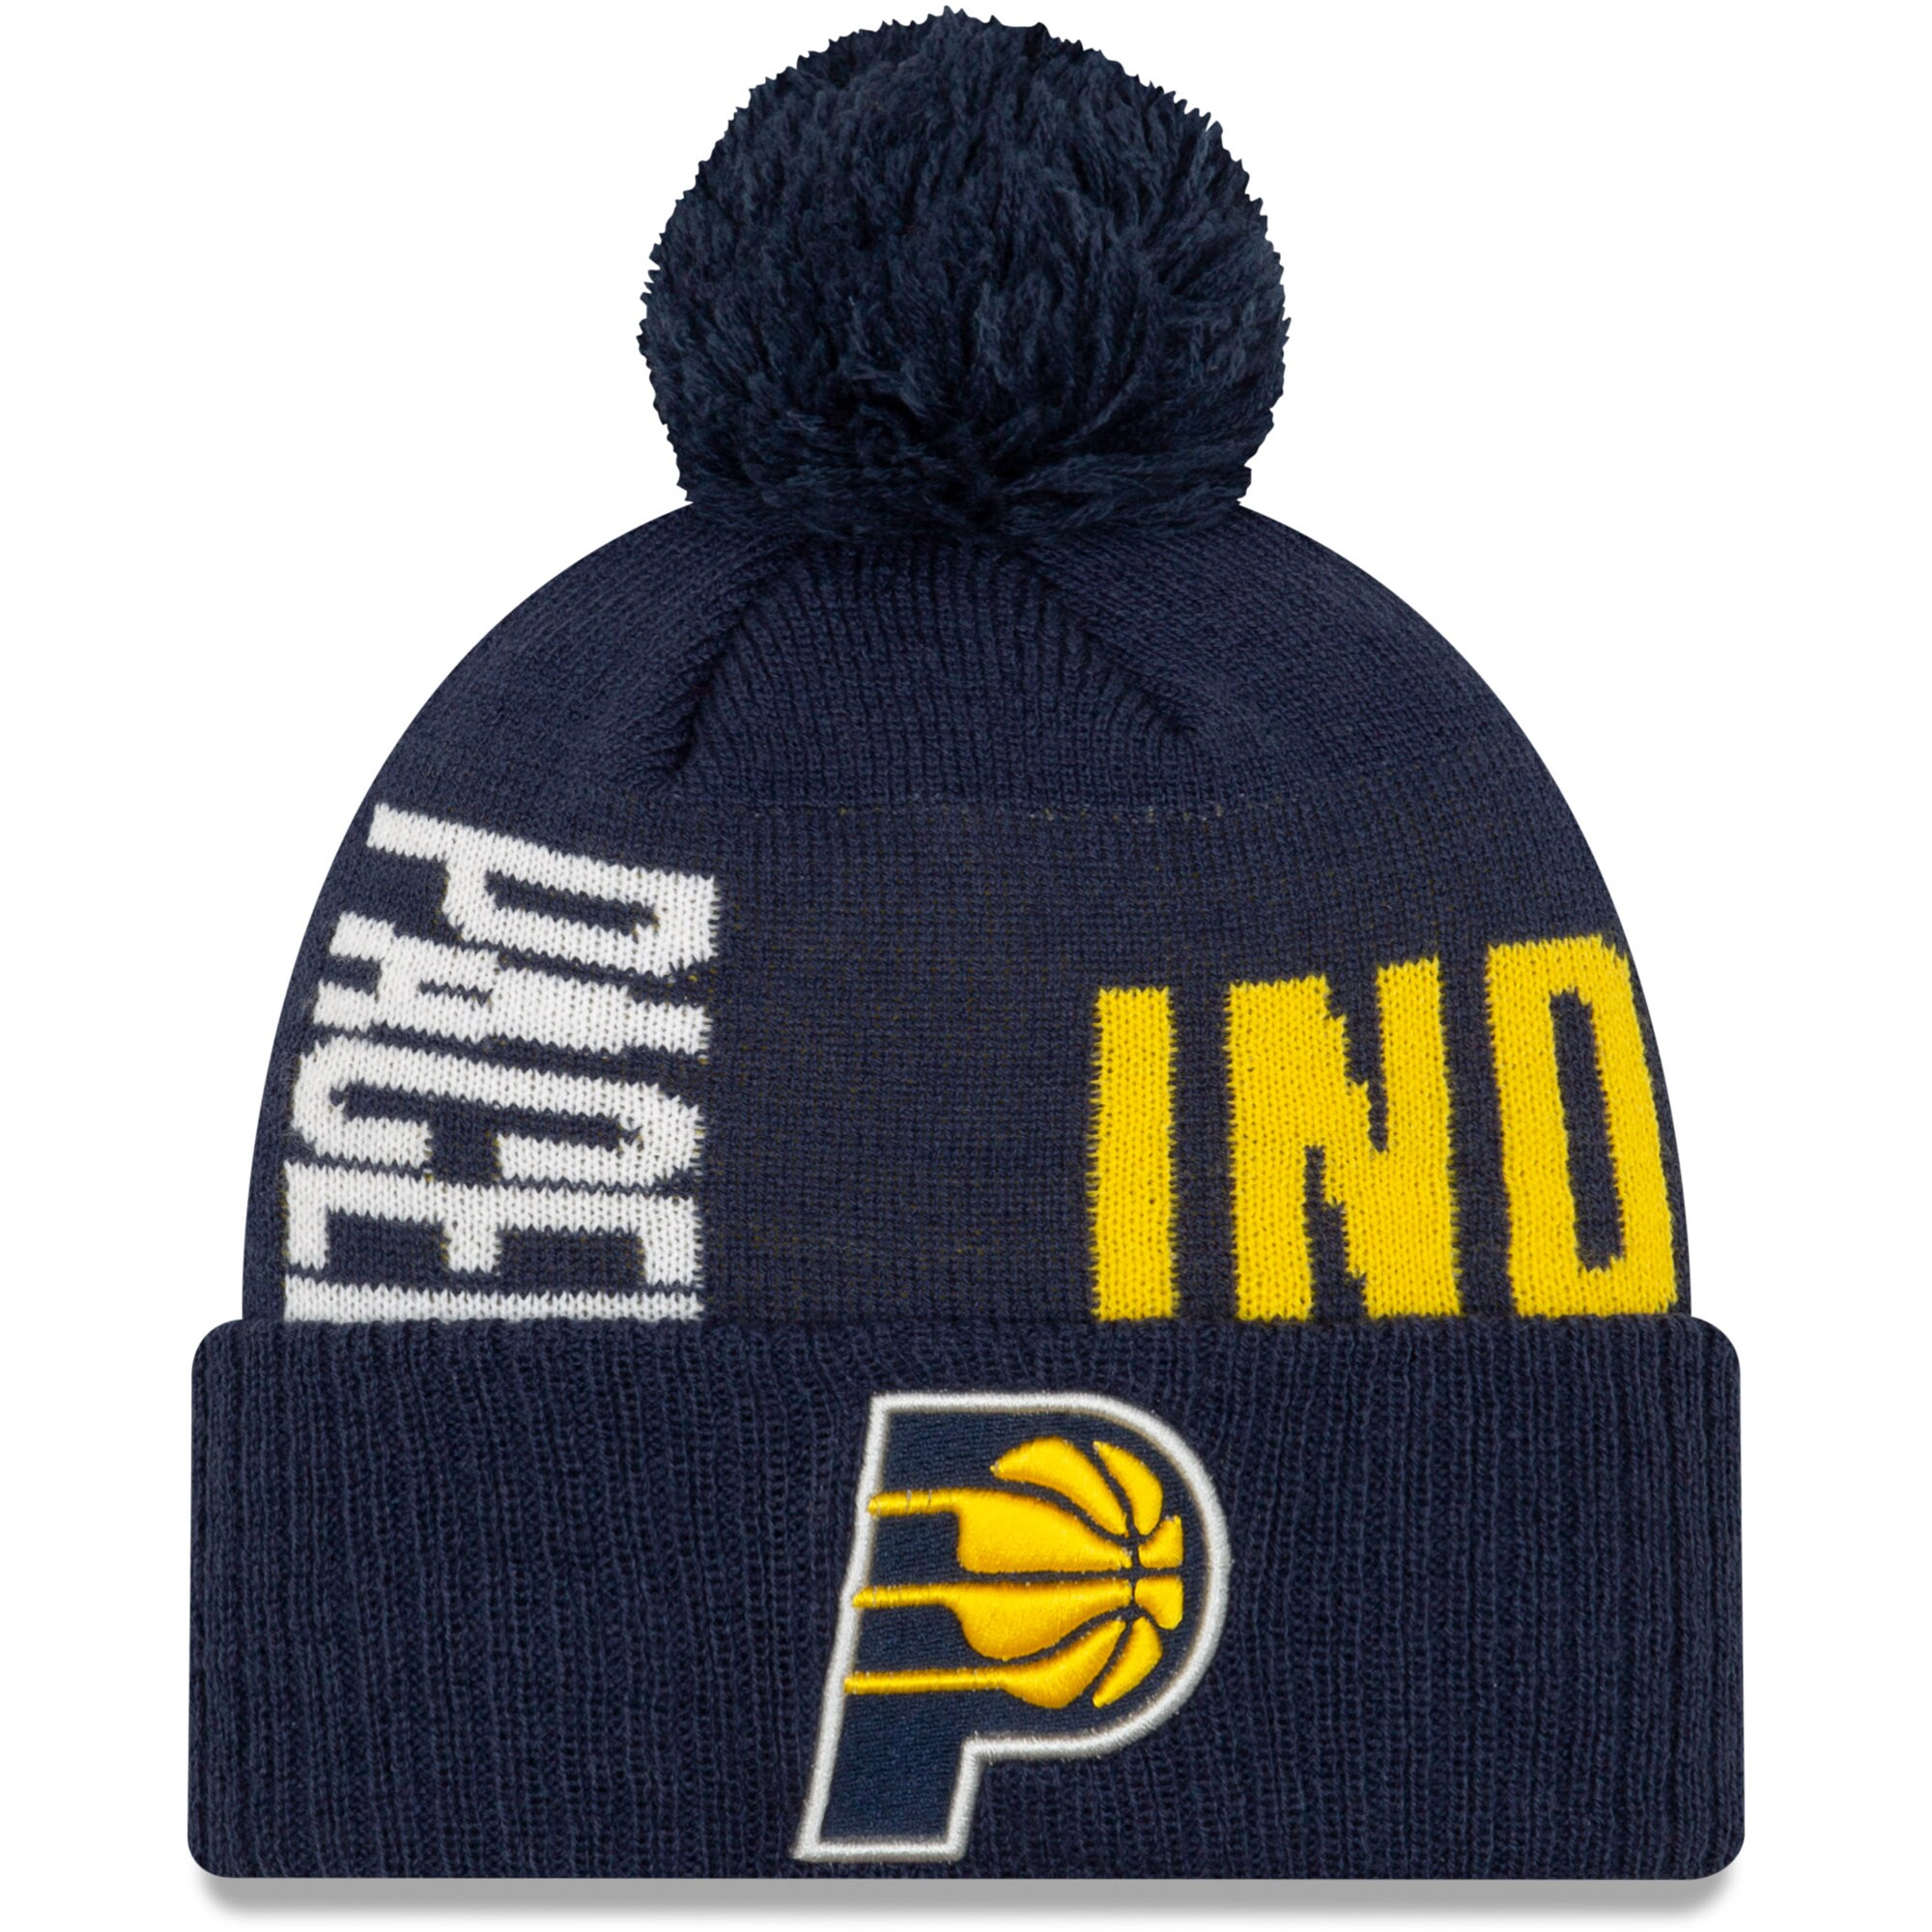 Indiana Pacers New Era 2019 NBA Tip-Off Series Cuffed Knit Hat - Navy